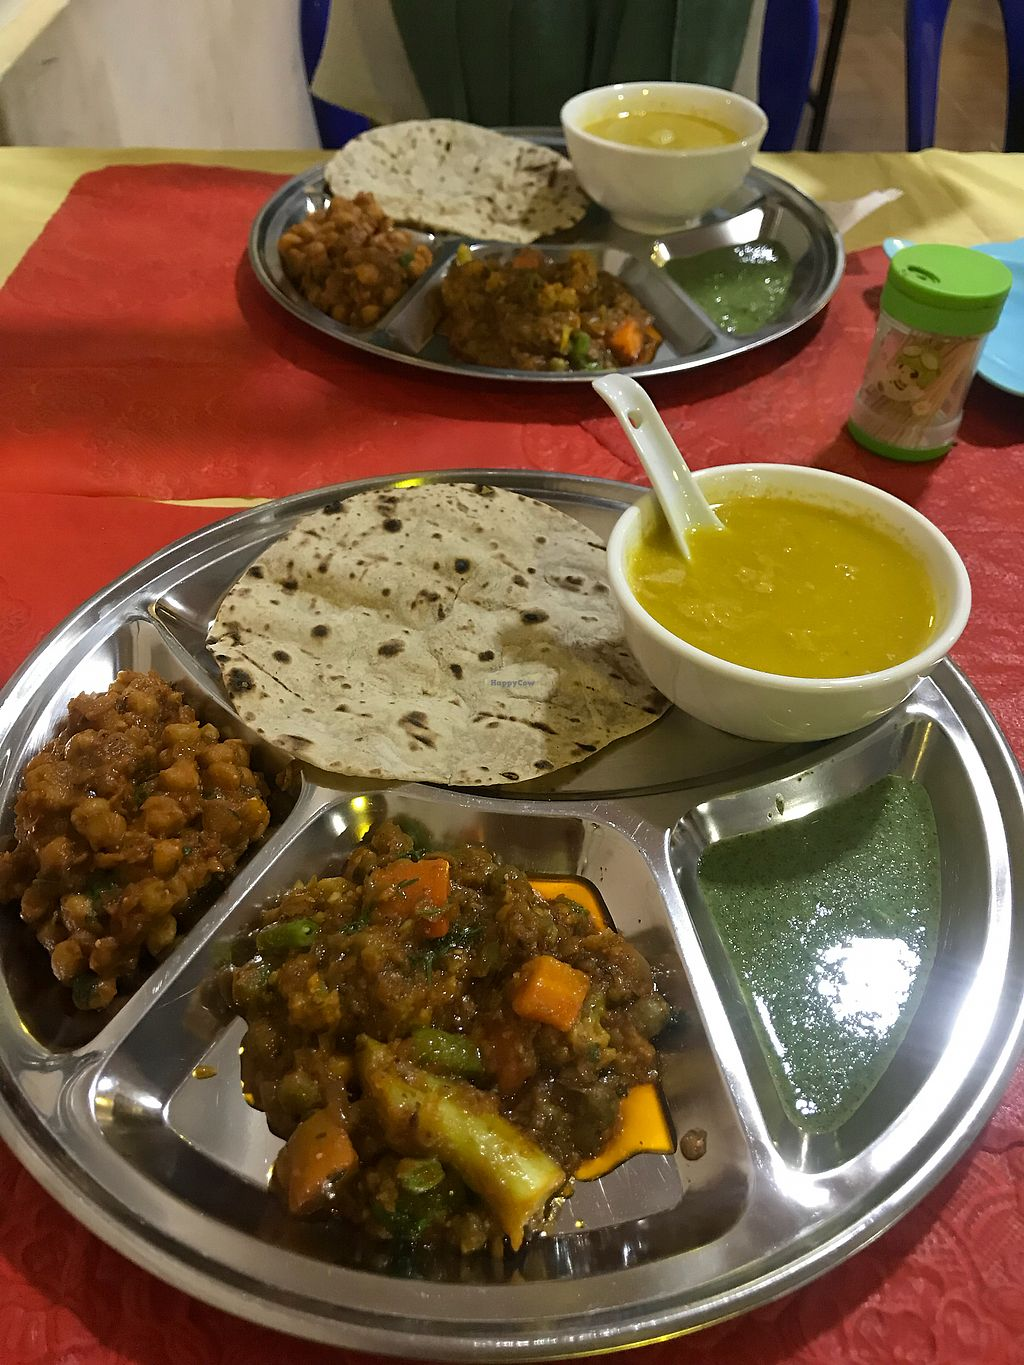 """Photo of Namaaste Kitchen  by <a href=""""/members/profile/MarieDy"""">MarieDy</a> <br/>Vegan Thali <br/> March 1, 2018  - <a href='/contact/abuse/image/102859/365383'>Report</a>"""